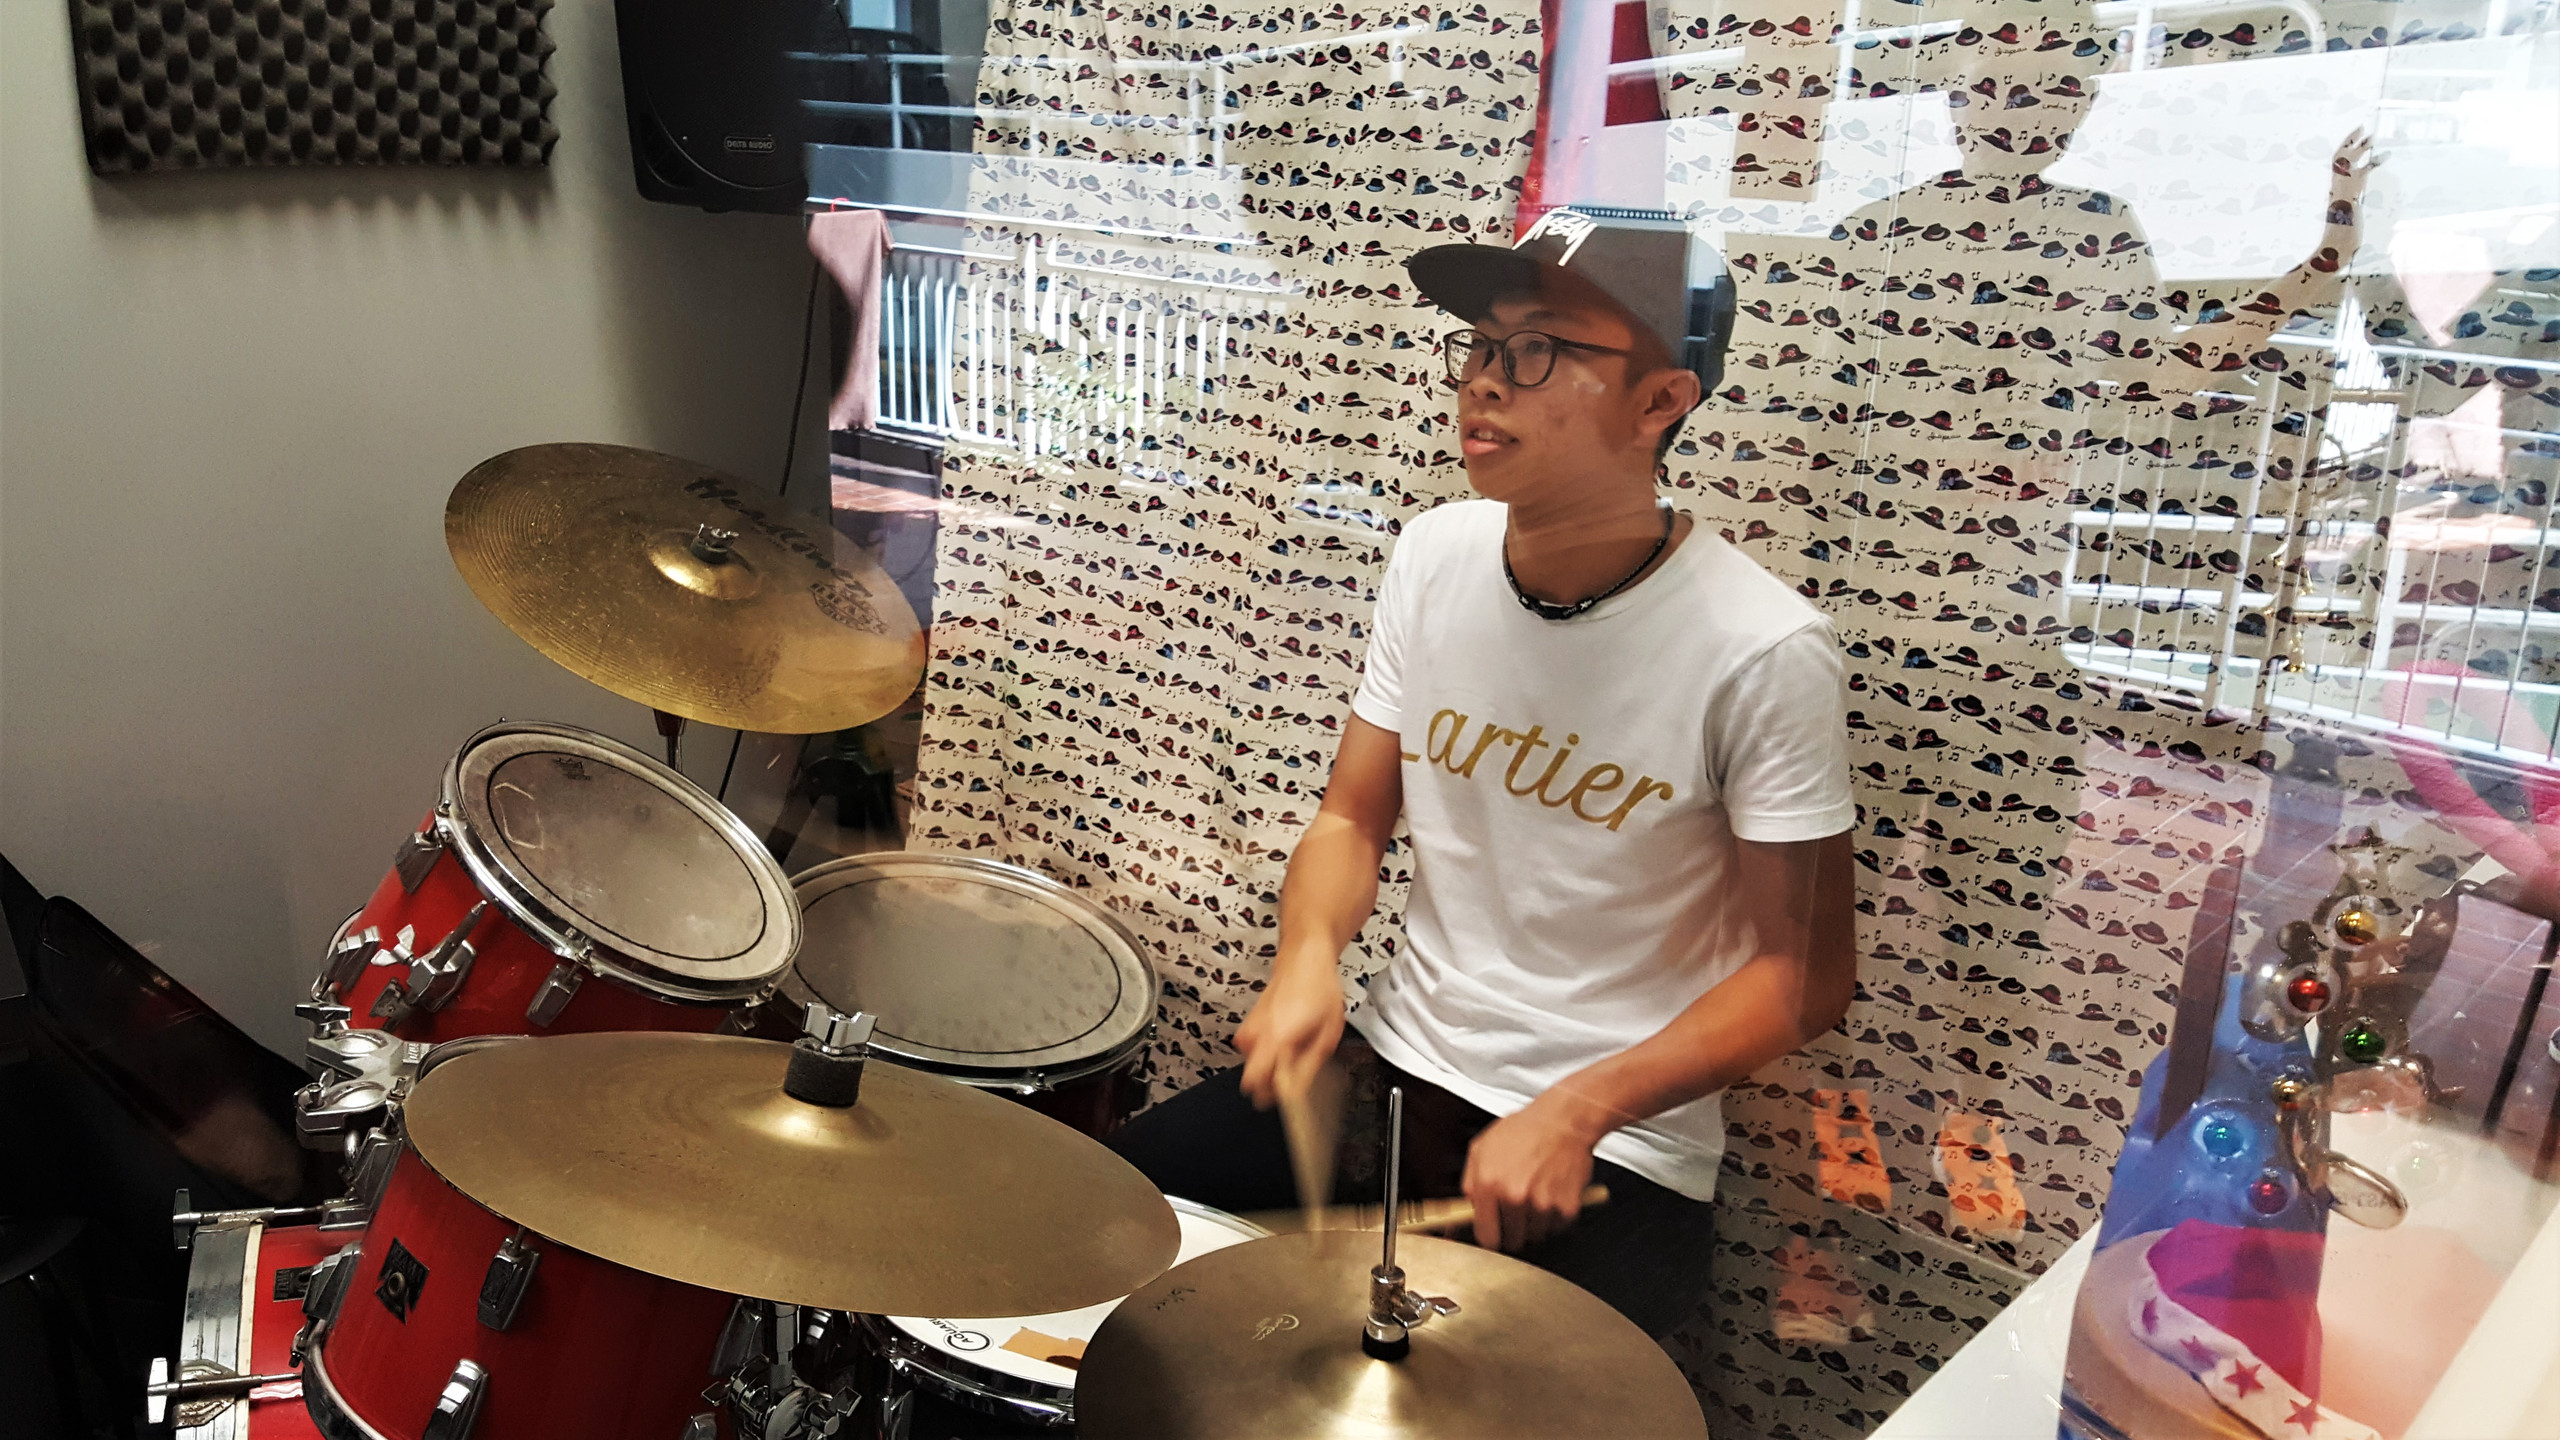 Shawn (our student) on the drums!